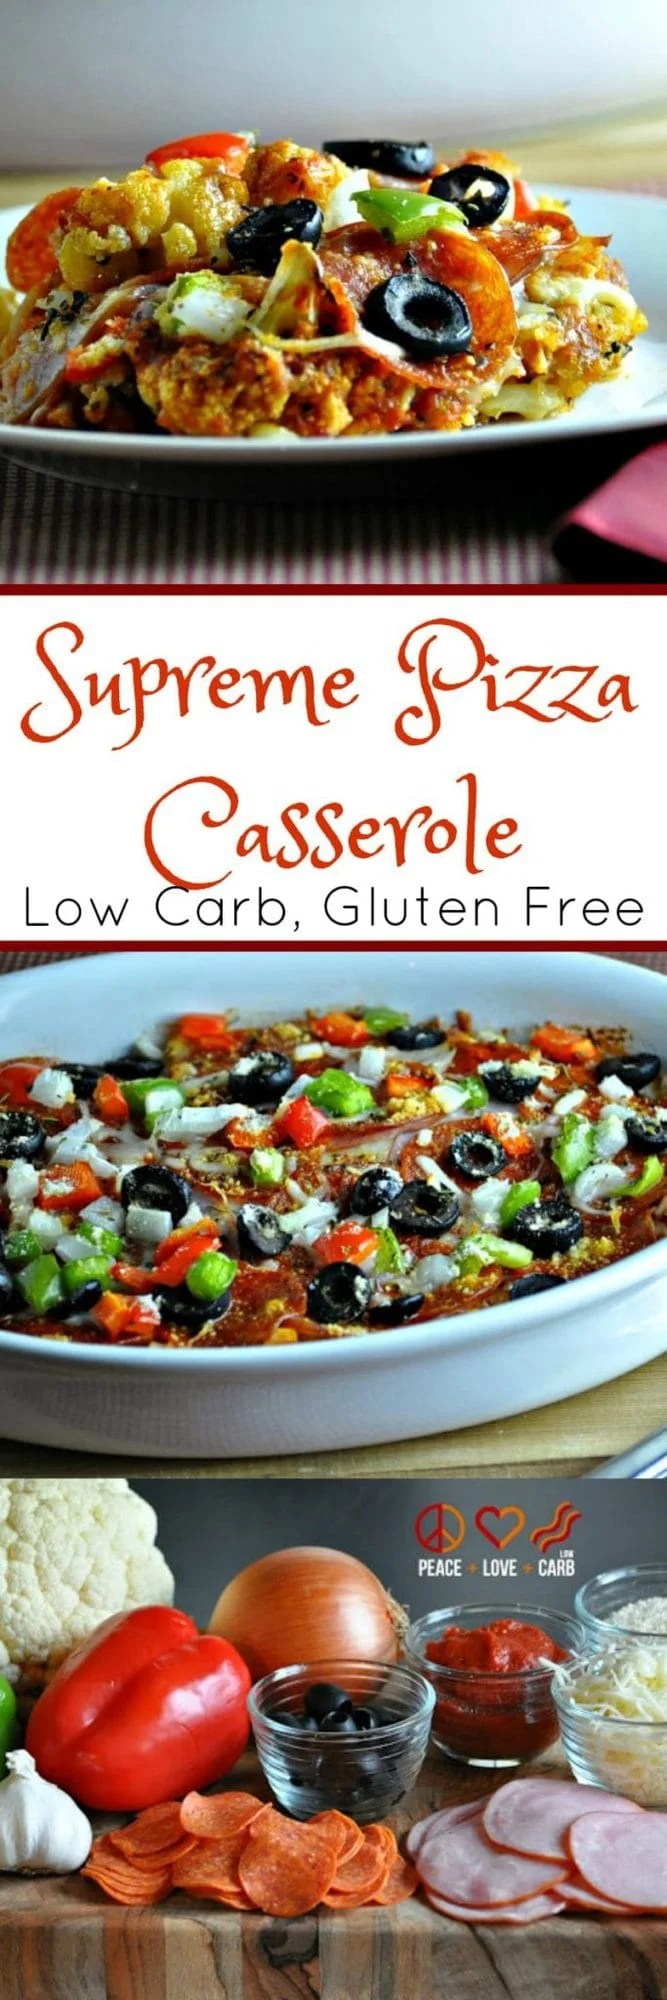 Supreme Pizza Cauliflower Casserole - Low Carb, Gluten Free | Peace Love and Low Carb